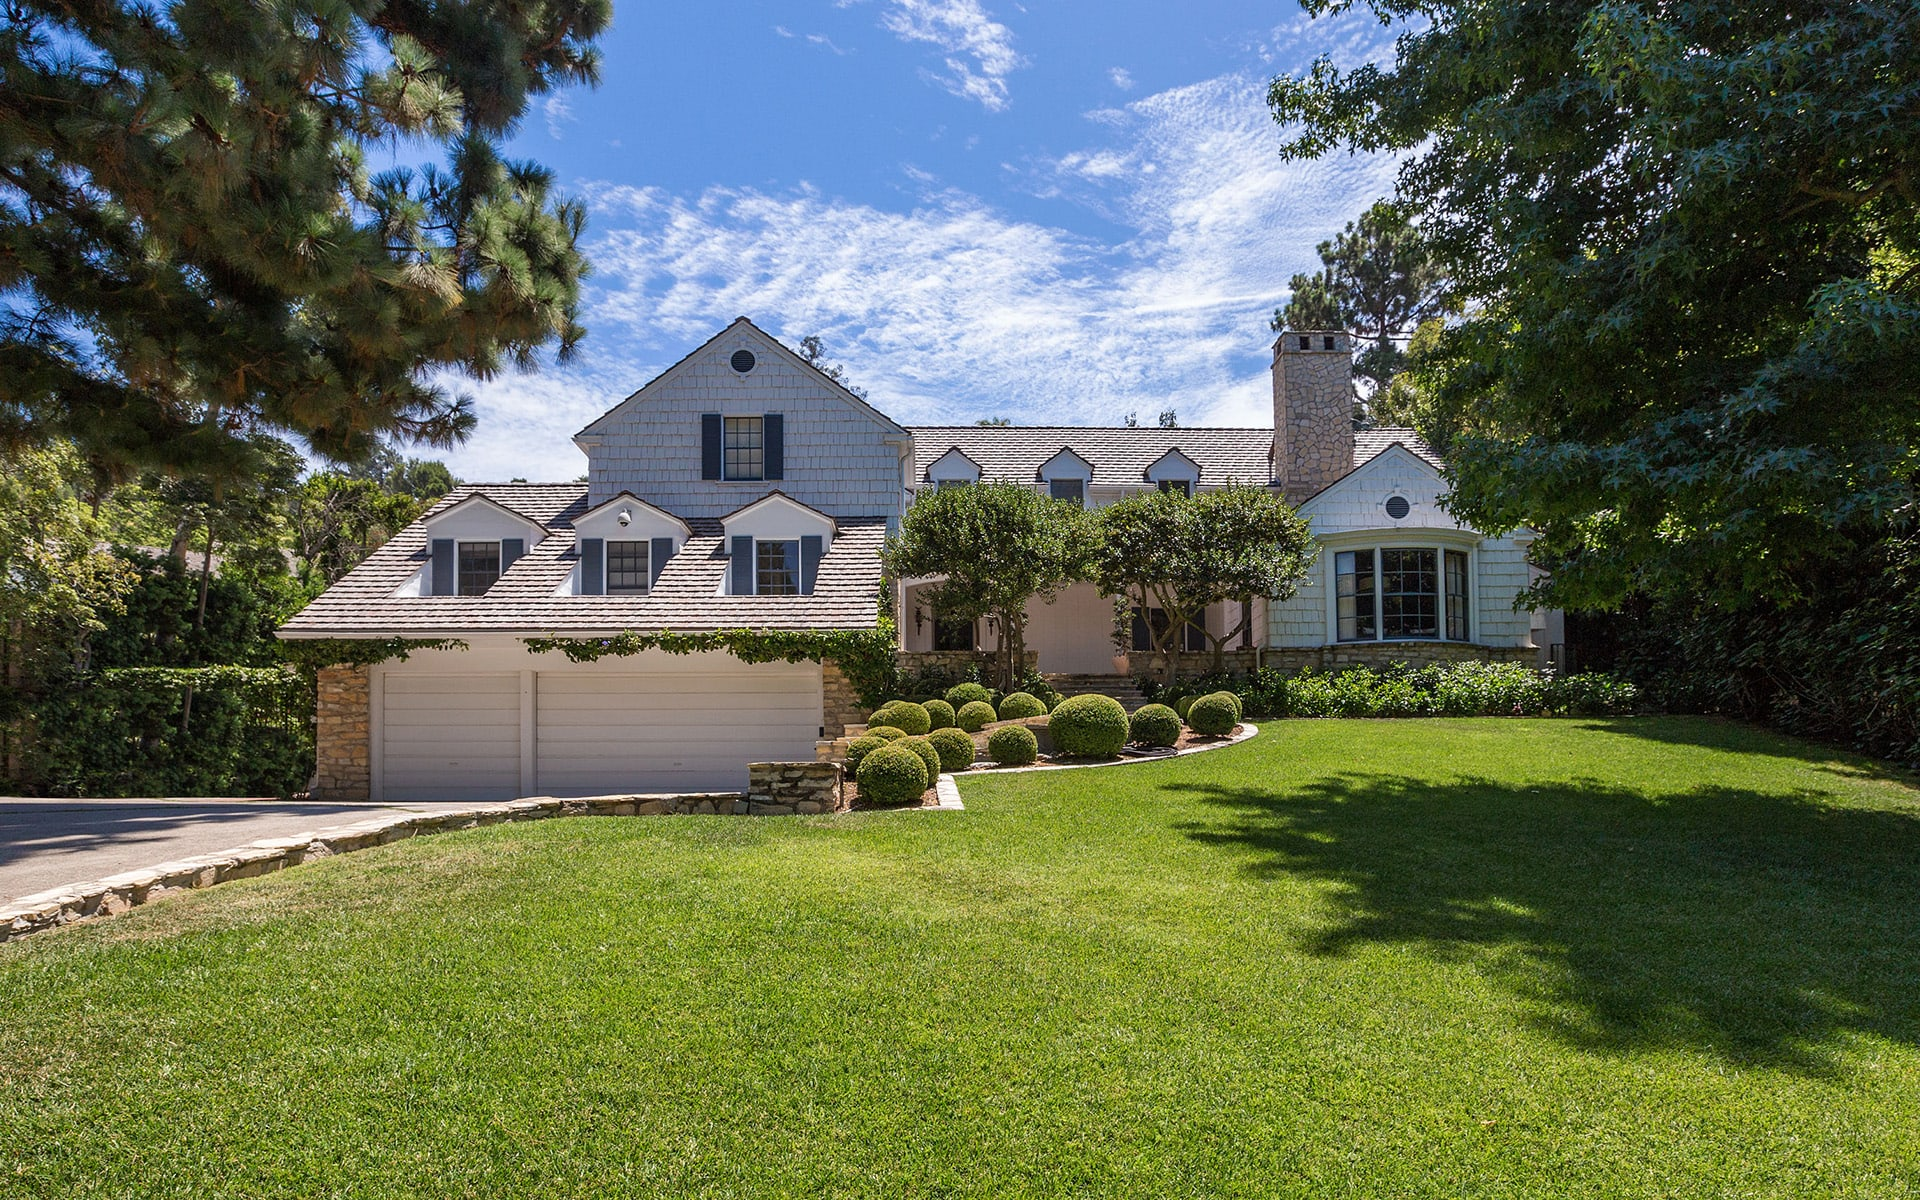 Single Family Home for Sale at 9212 Hazen Dr 9212 Hazen Dr Beverly Hills, California,90210 United States